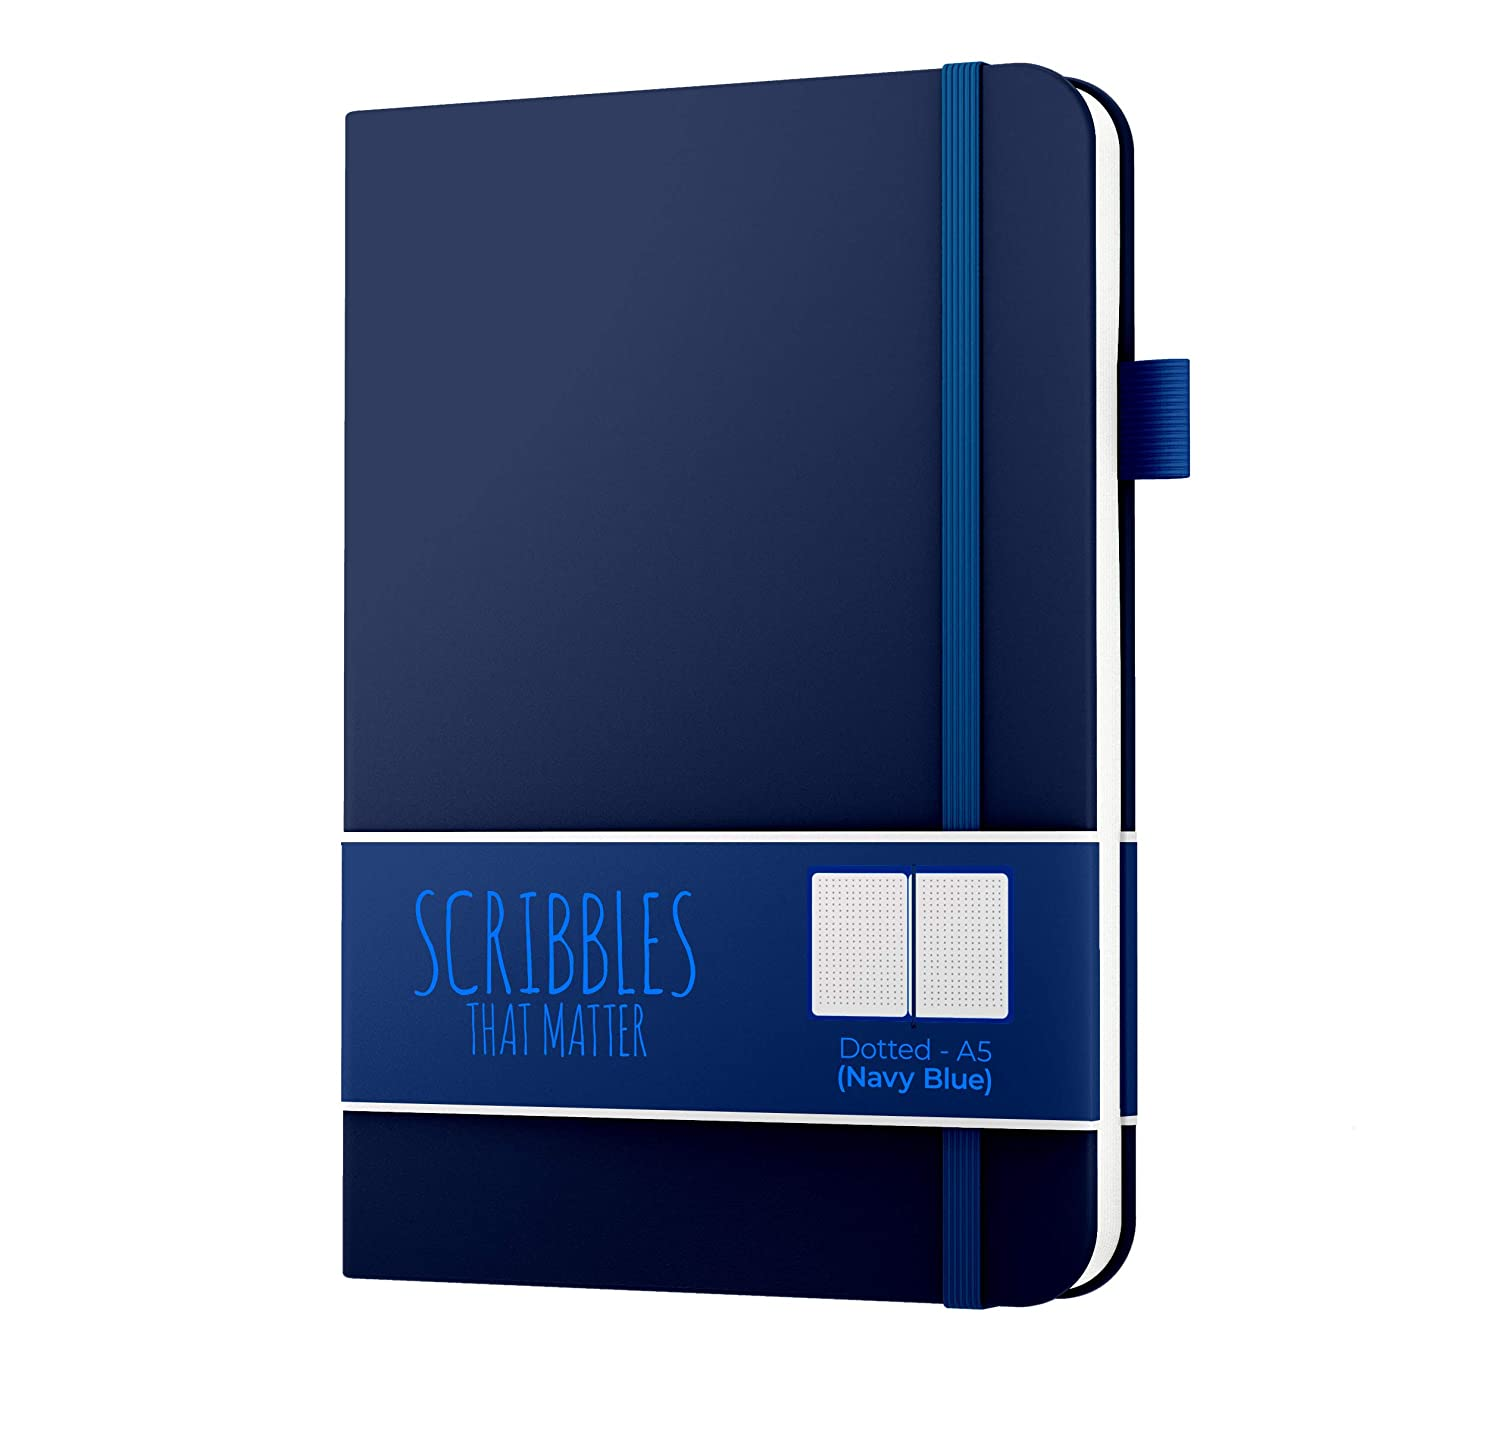 Scribbles That Matter (Softcover) Dotted Journal Notebook Diary A5 | Elastic Band | Beautiful Designer Cover | Premium Thick Paper (Navy Blue)